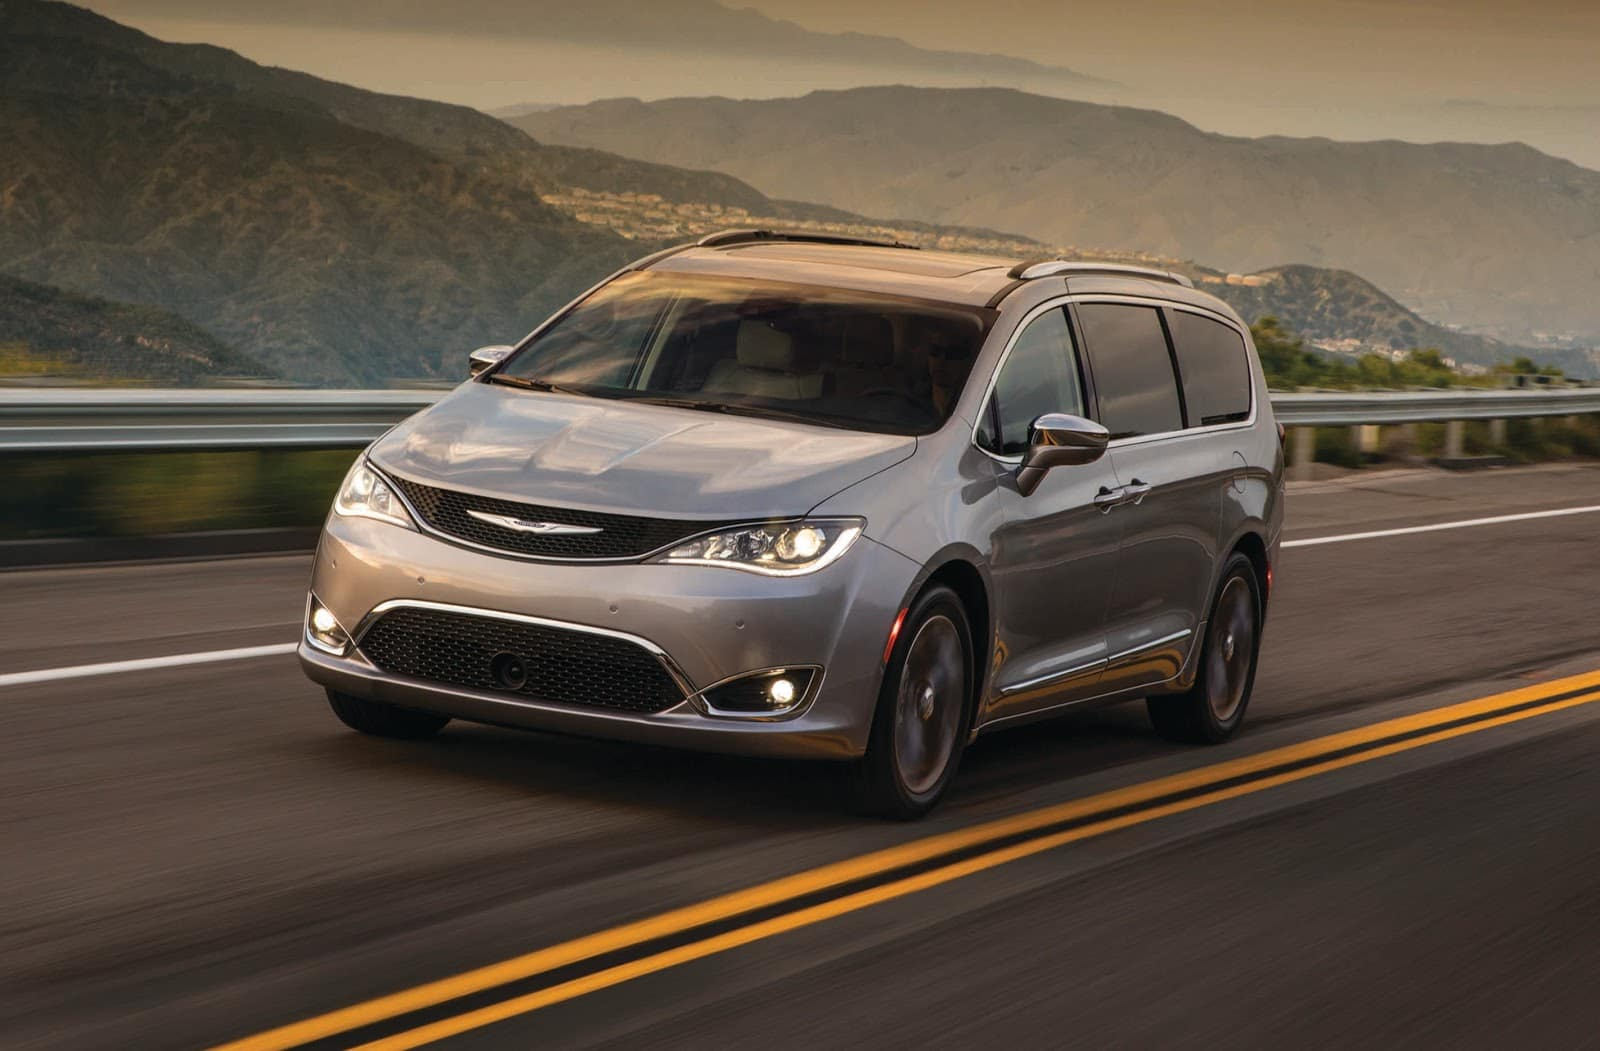 silver 2019 chrysler pacifica driving on winding highway with mountains in background